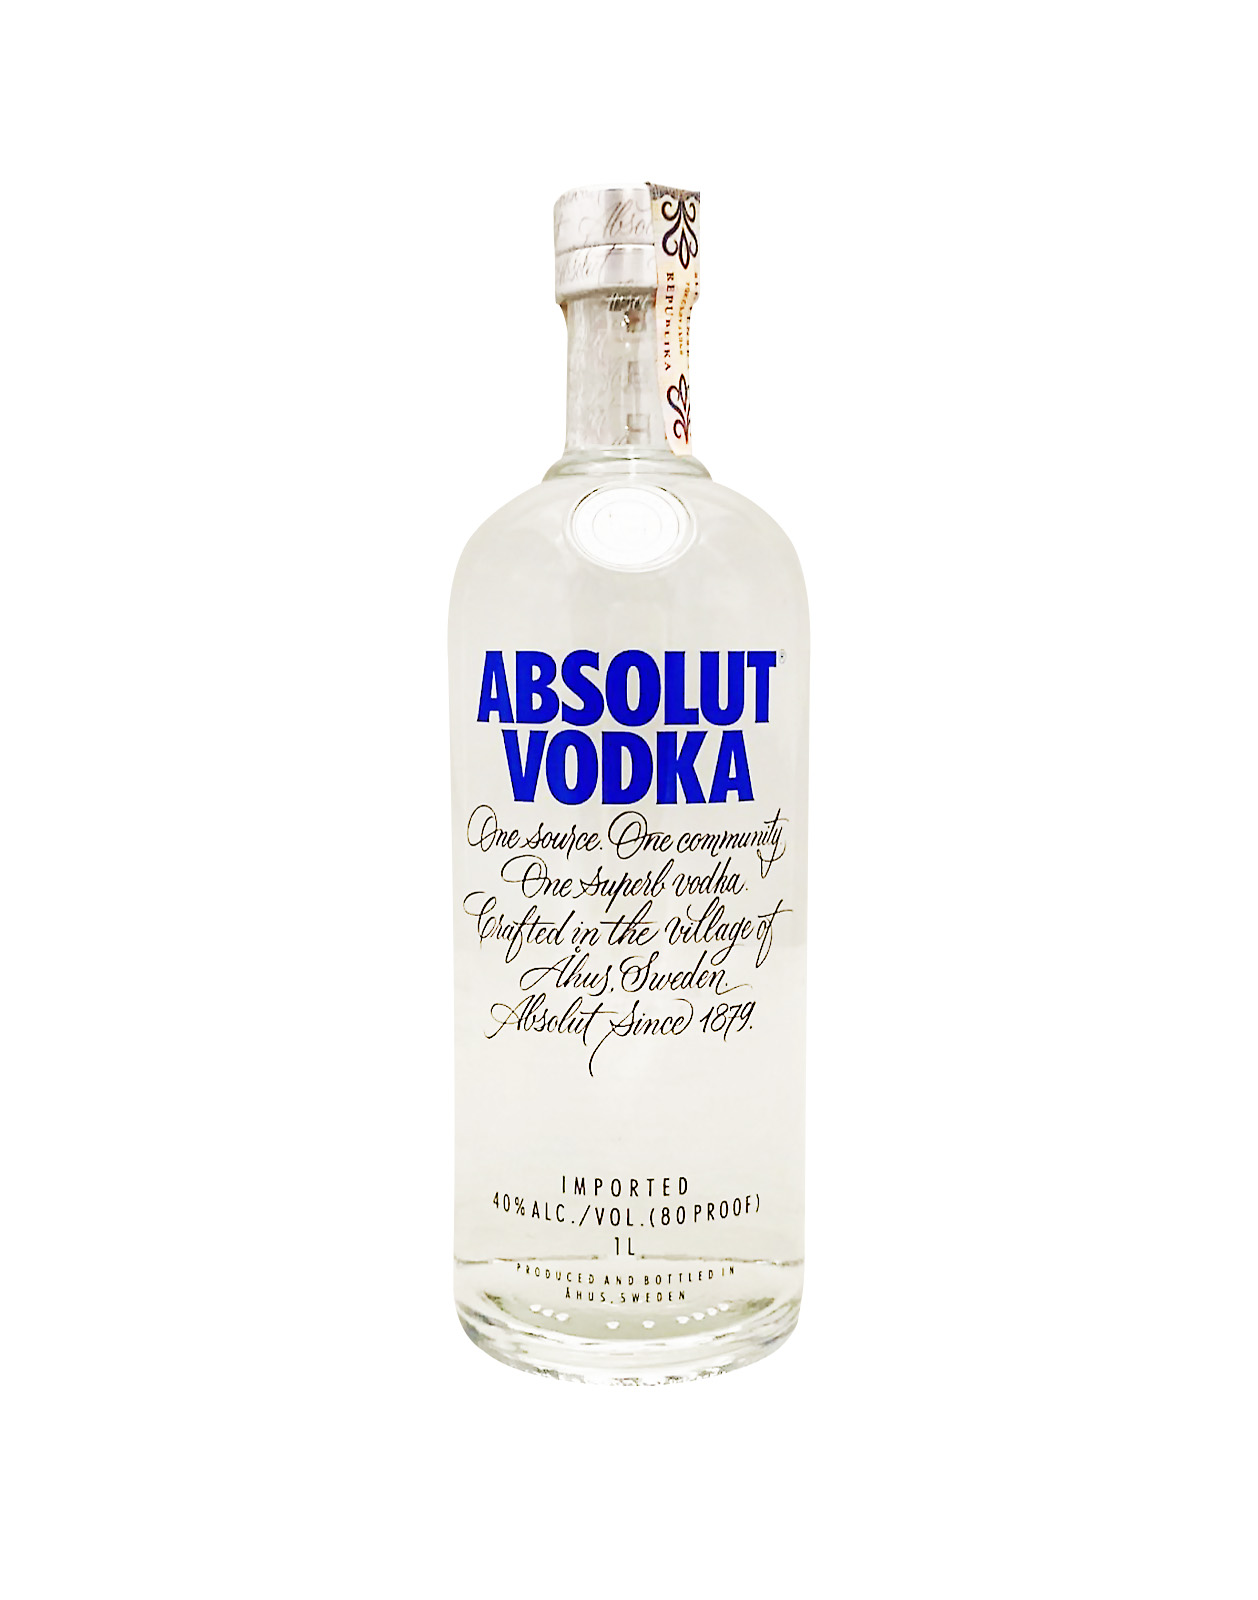 Absolut Vodka 40%, Bottleshop Sunny wines slnecnice mesto, petrzalka, Vodka, rozvoz alkoholu, eshop